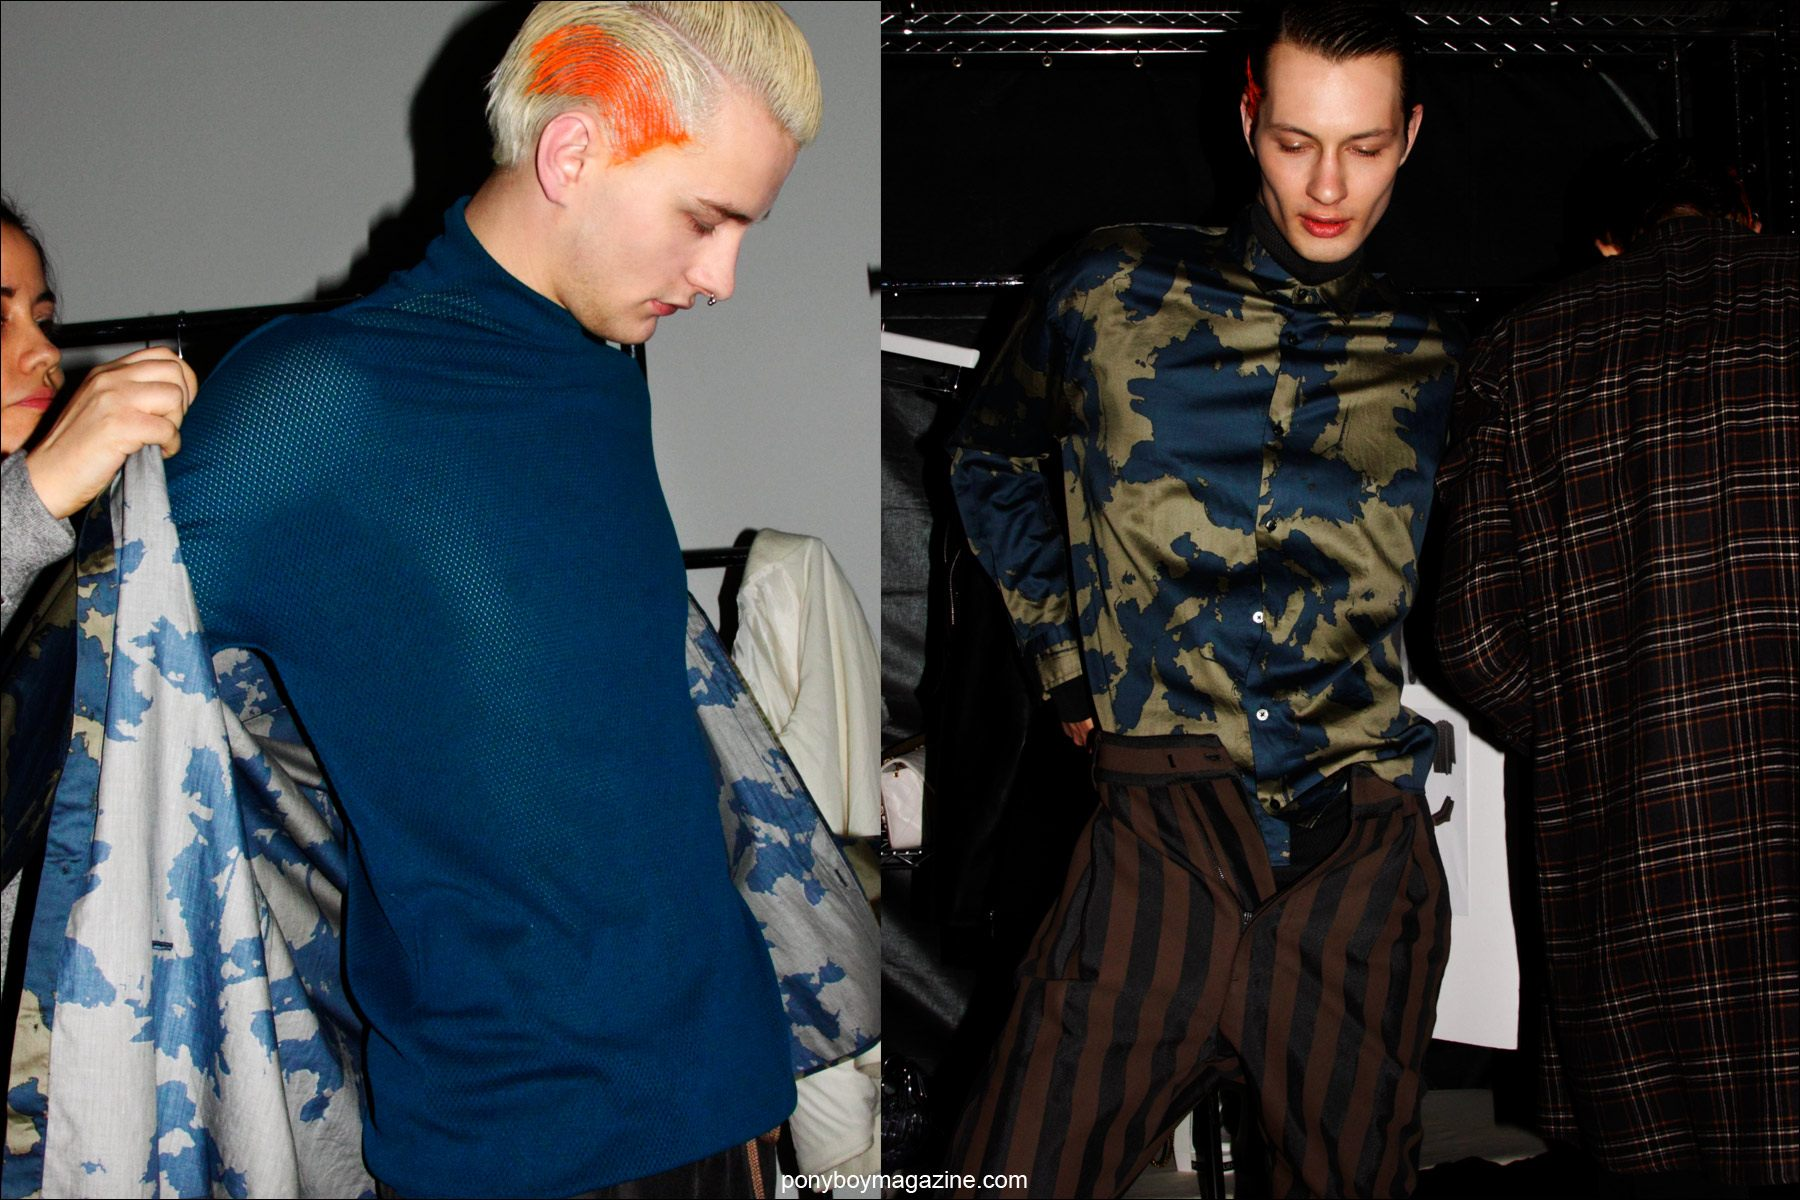 Male models Benjamin Jarvis and Dima Dionesov photographed getting dressed backstage at the Robert Geller F/W15 menswear collection. Photos by Alexander Thompson for Ponyboy magazine.